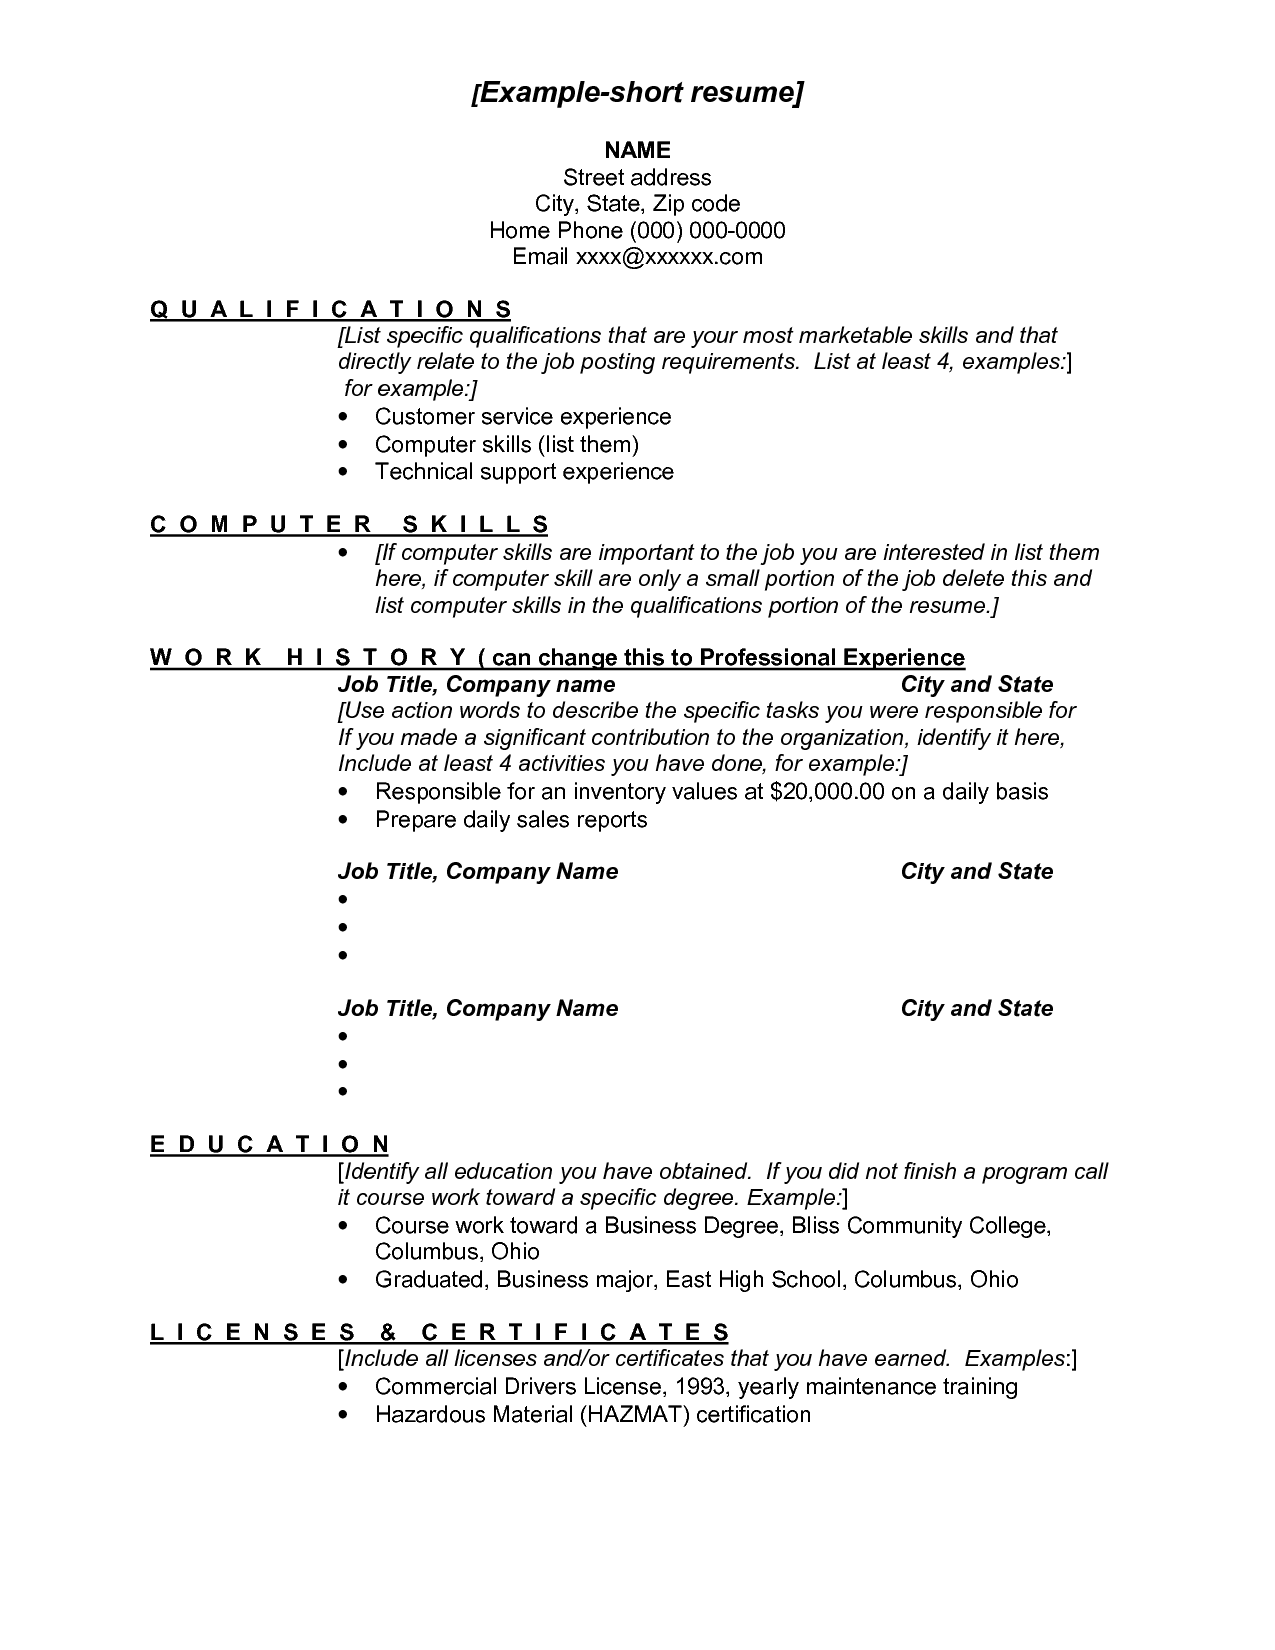 Resume Profile Examples Examples Of A Short Resumes  Exampleshort Resume  Short Resume